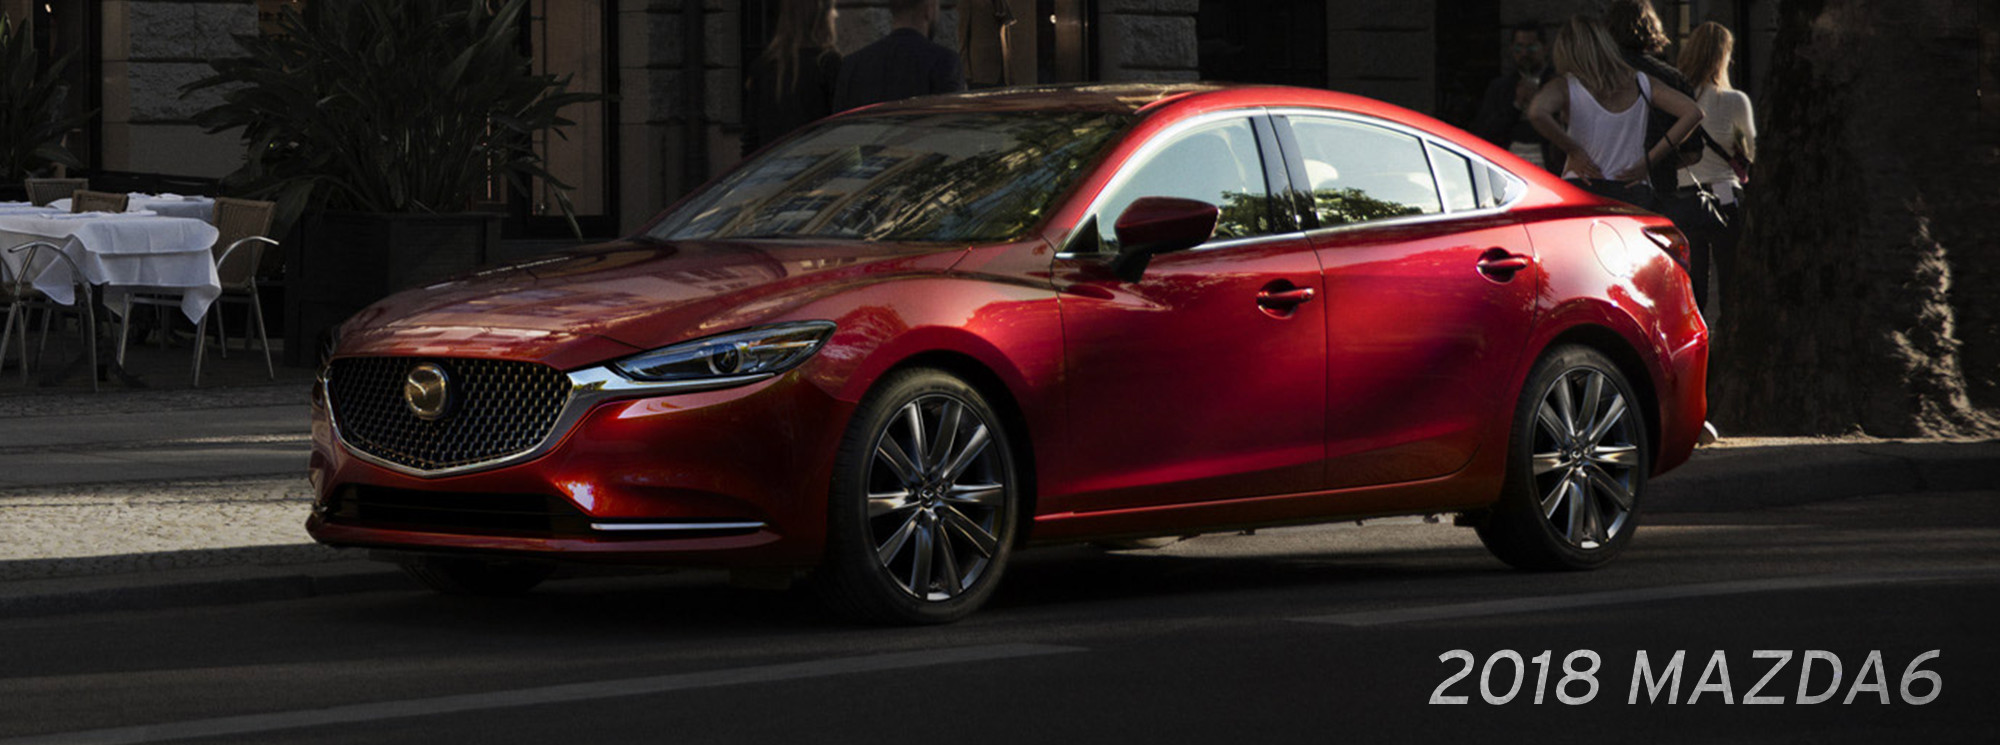 on here mazda of roswell competitive in and sales home pricing service is